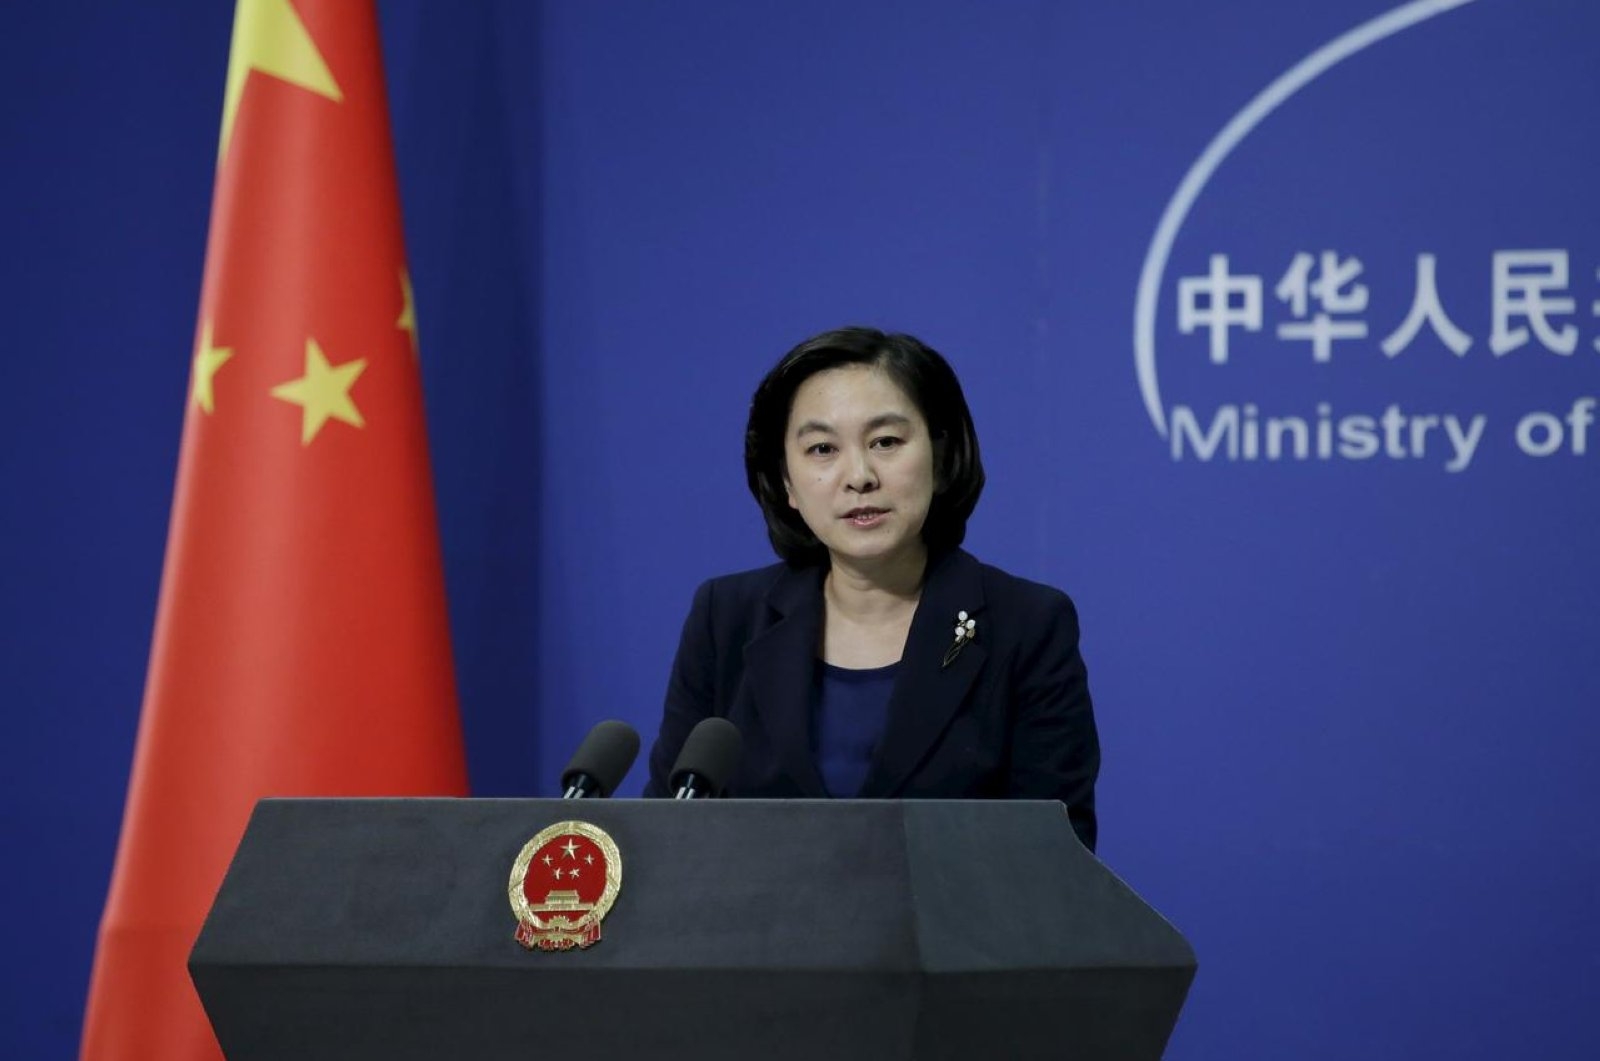 Foreign Ministry spokeswoman Hua Chunying speaks in an undated photo. (Reuters Photo)